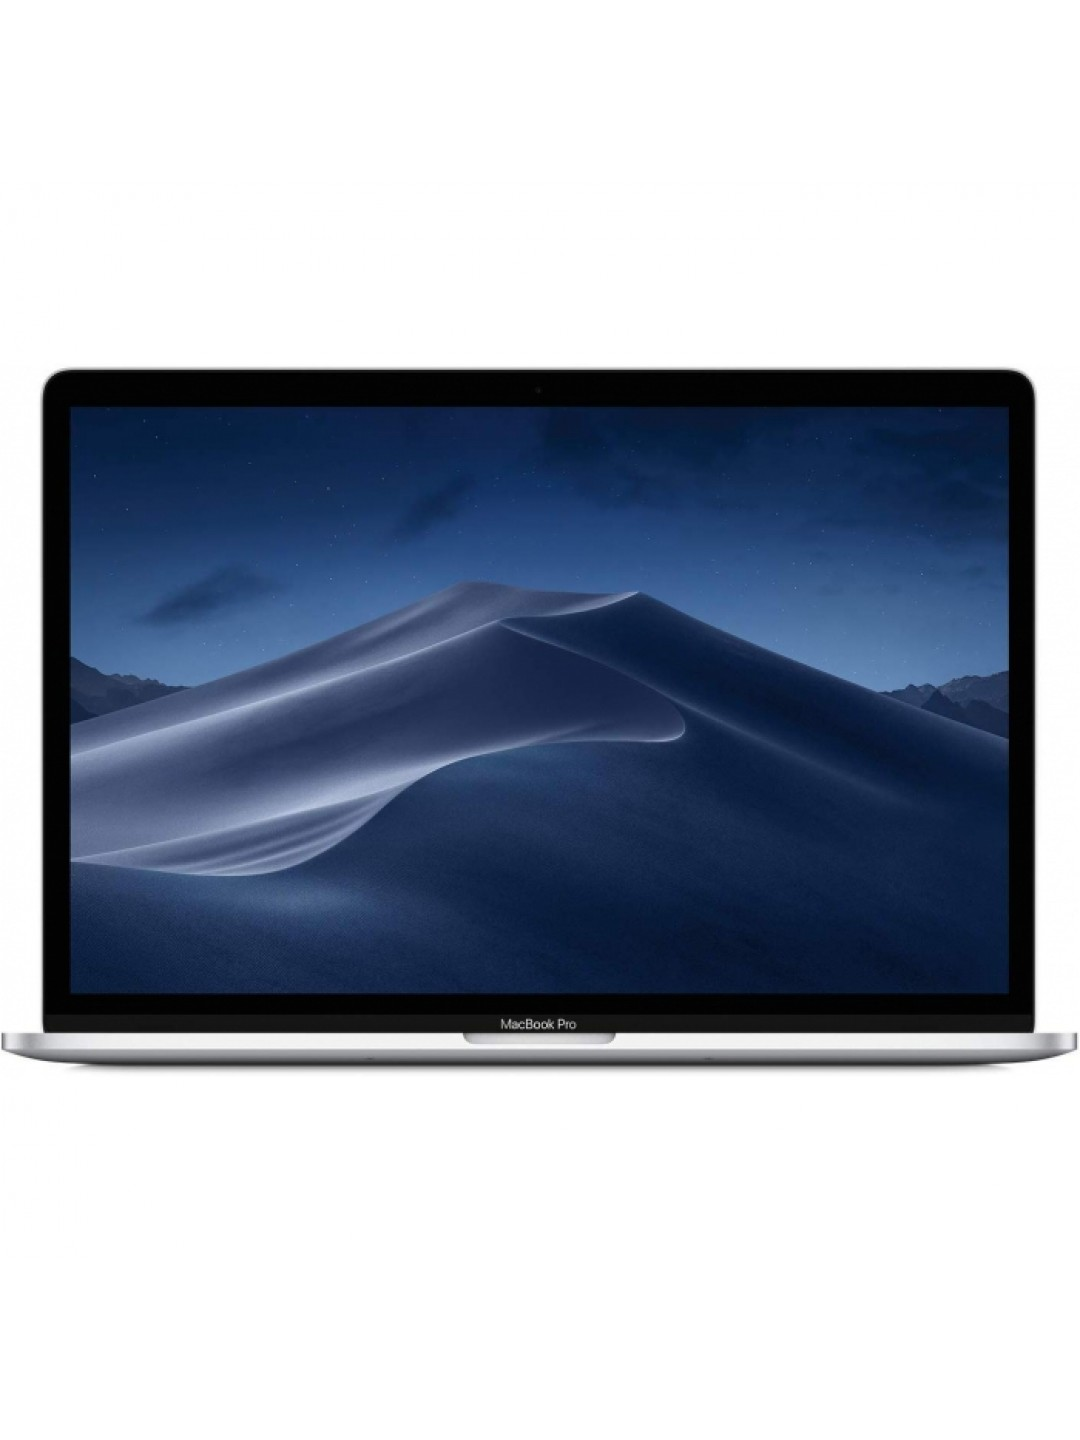 Laptop Apple Macbook Pro 2019 MV922 15 16GB 256GB 2.6GHz 6-Core I7